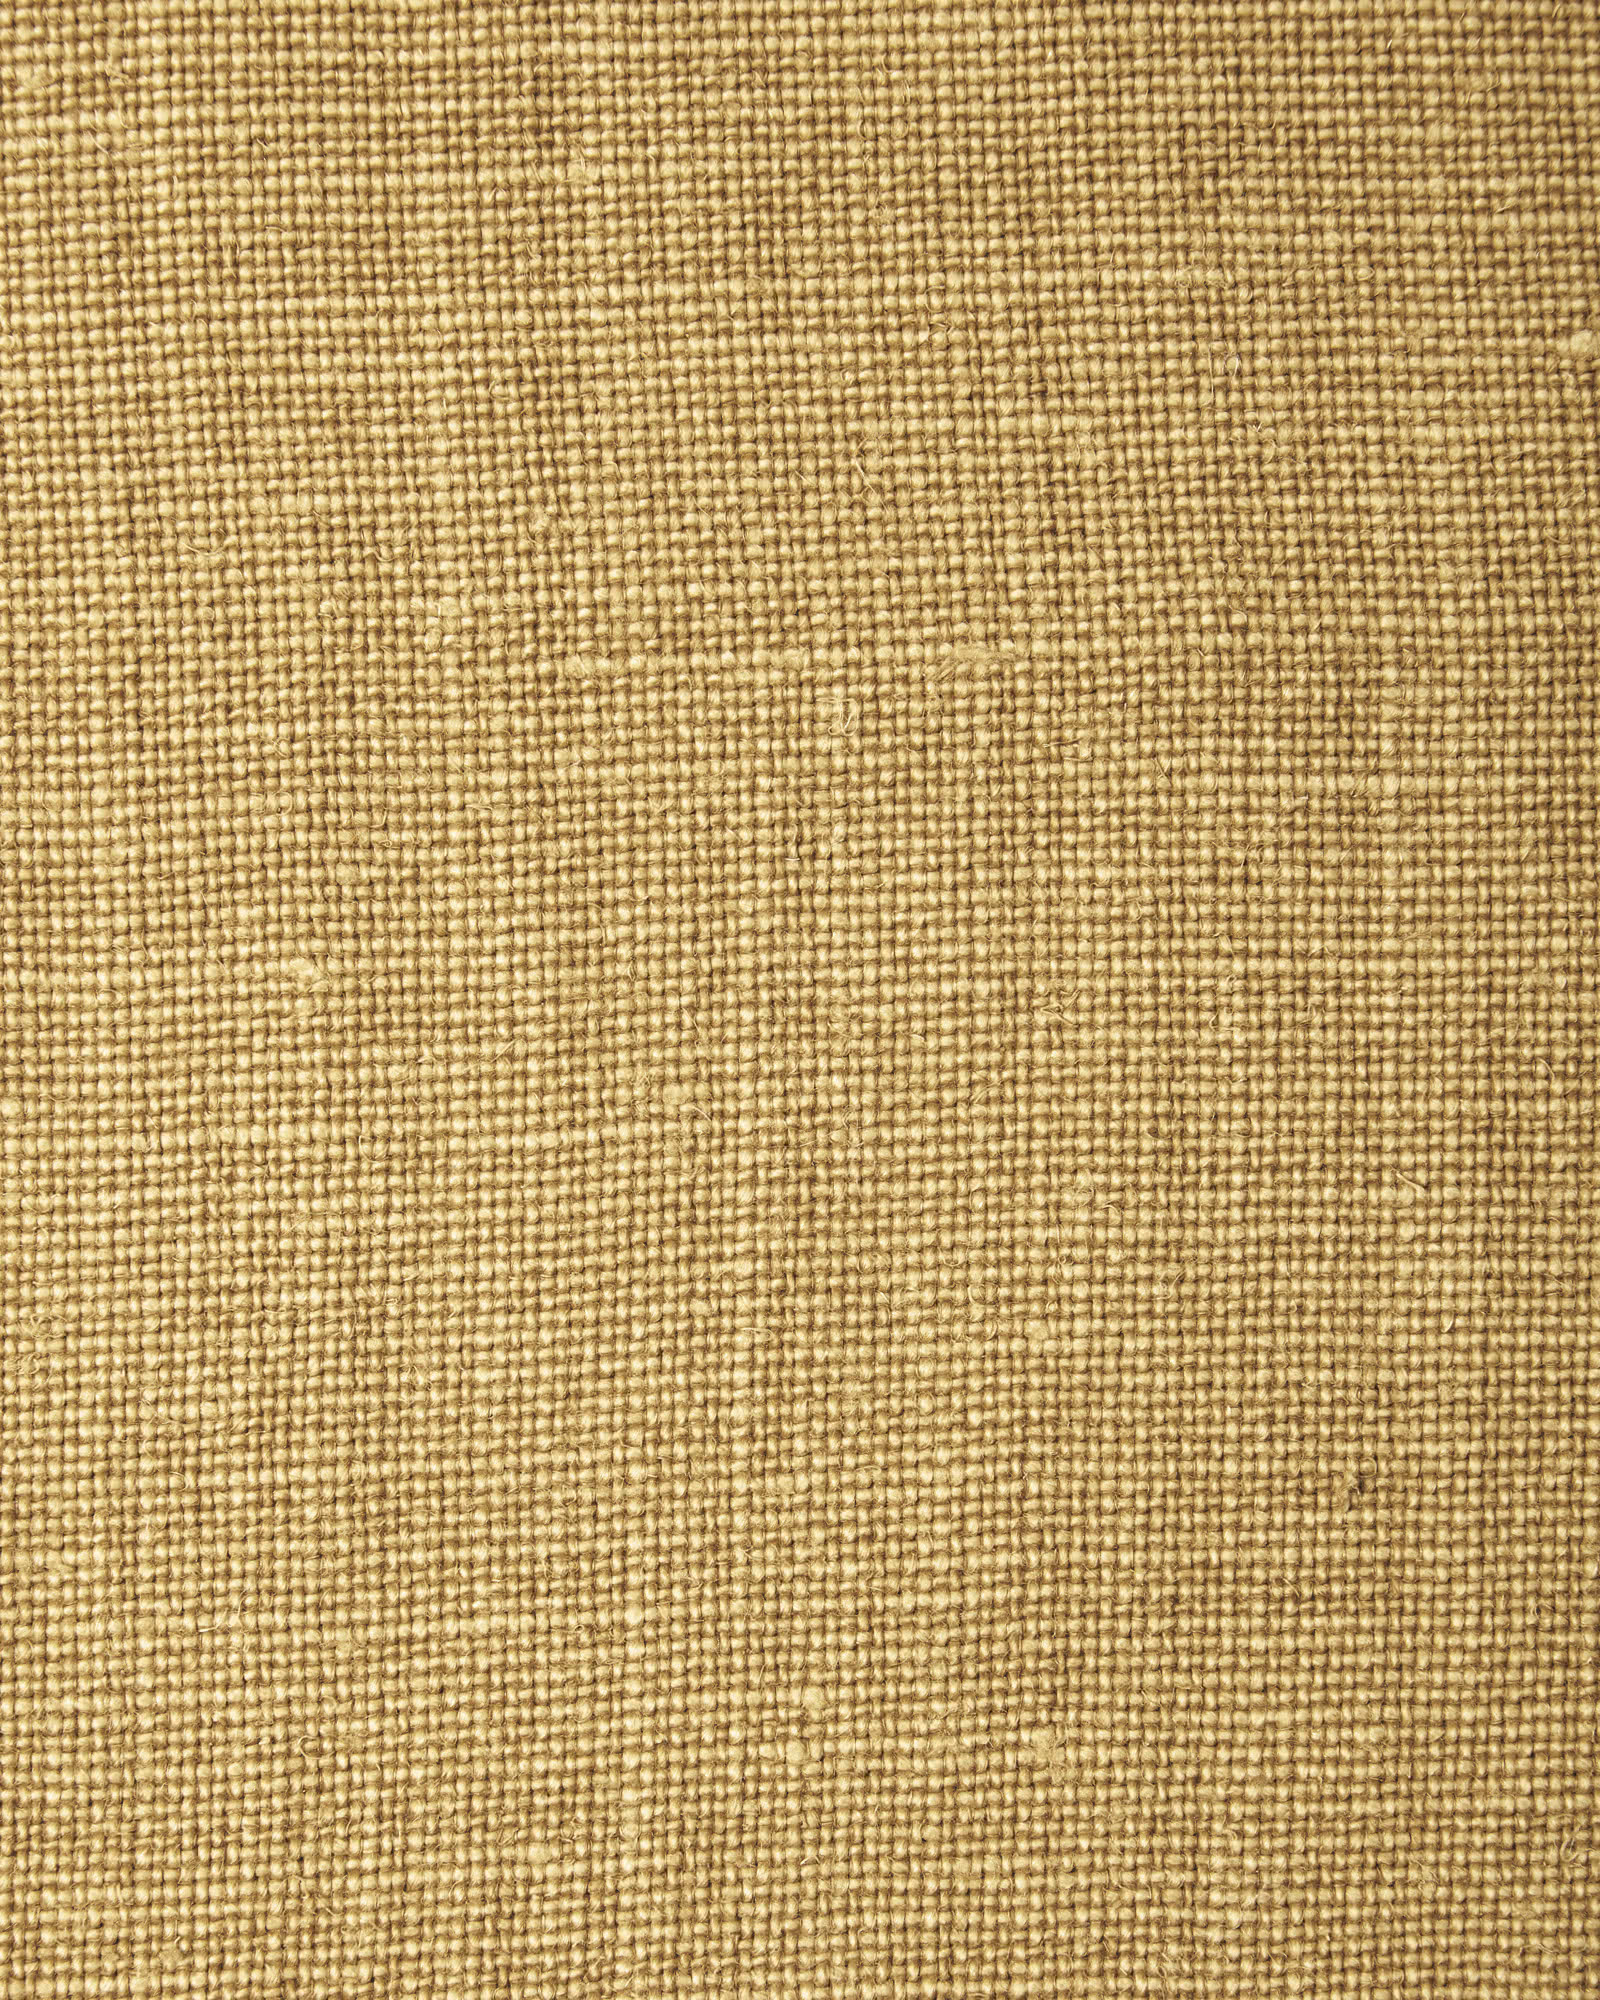 Washed Linen - Gold